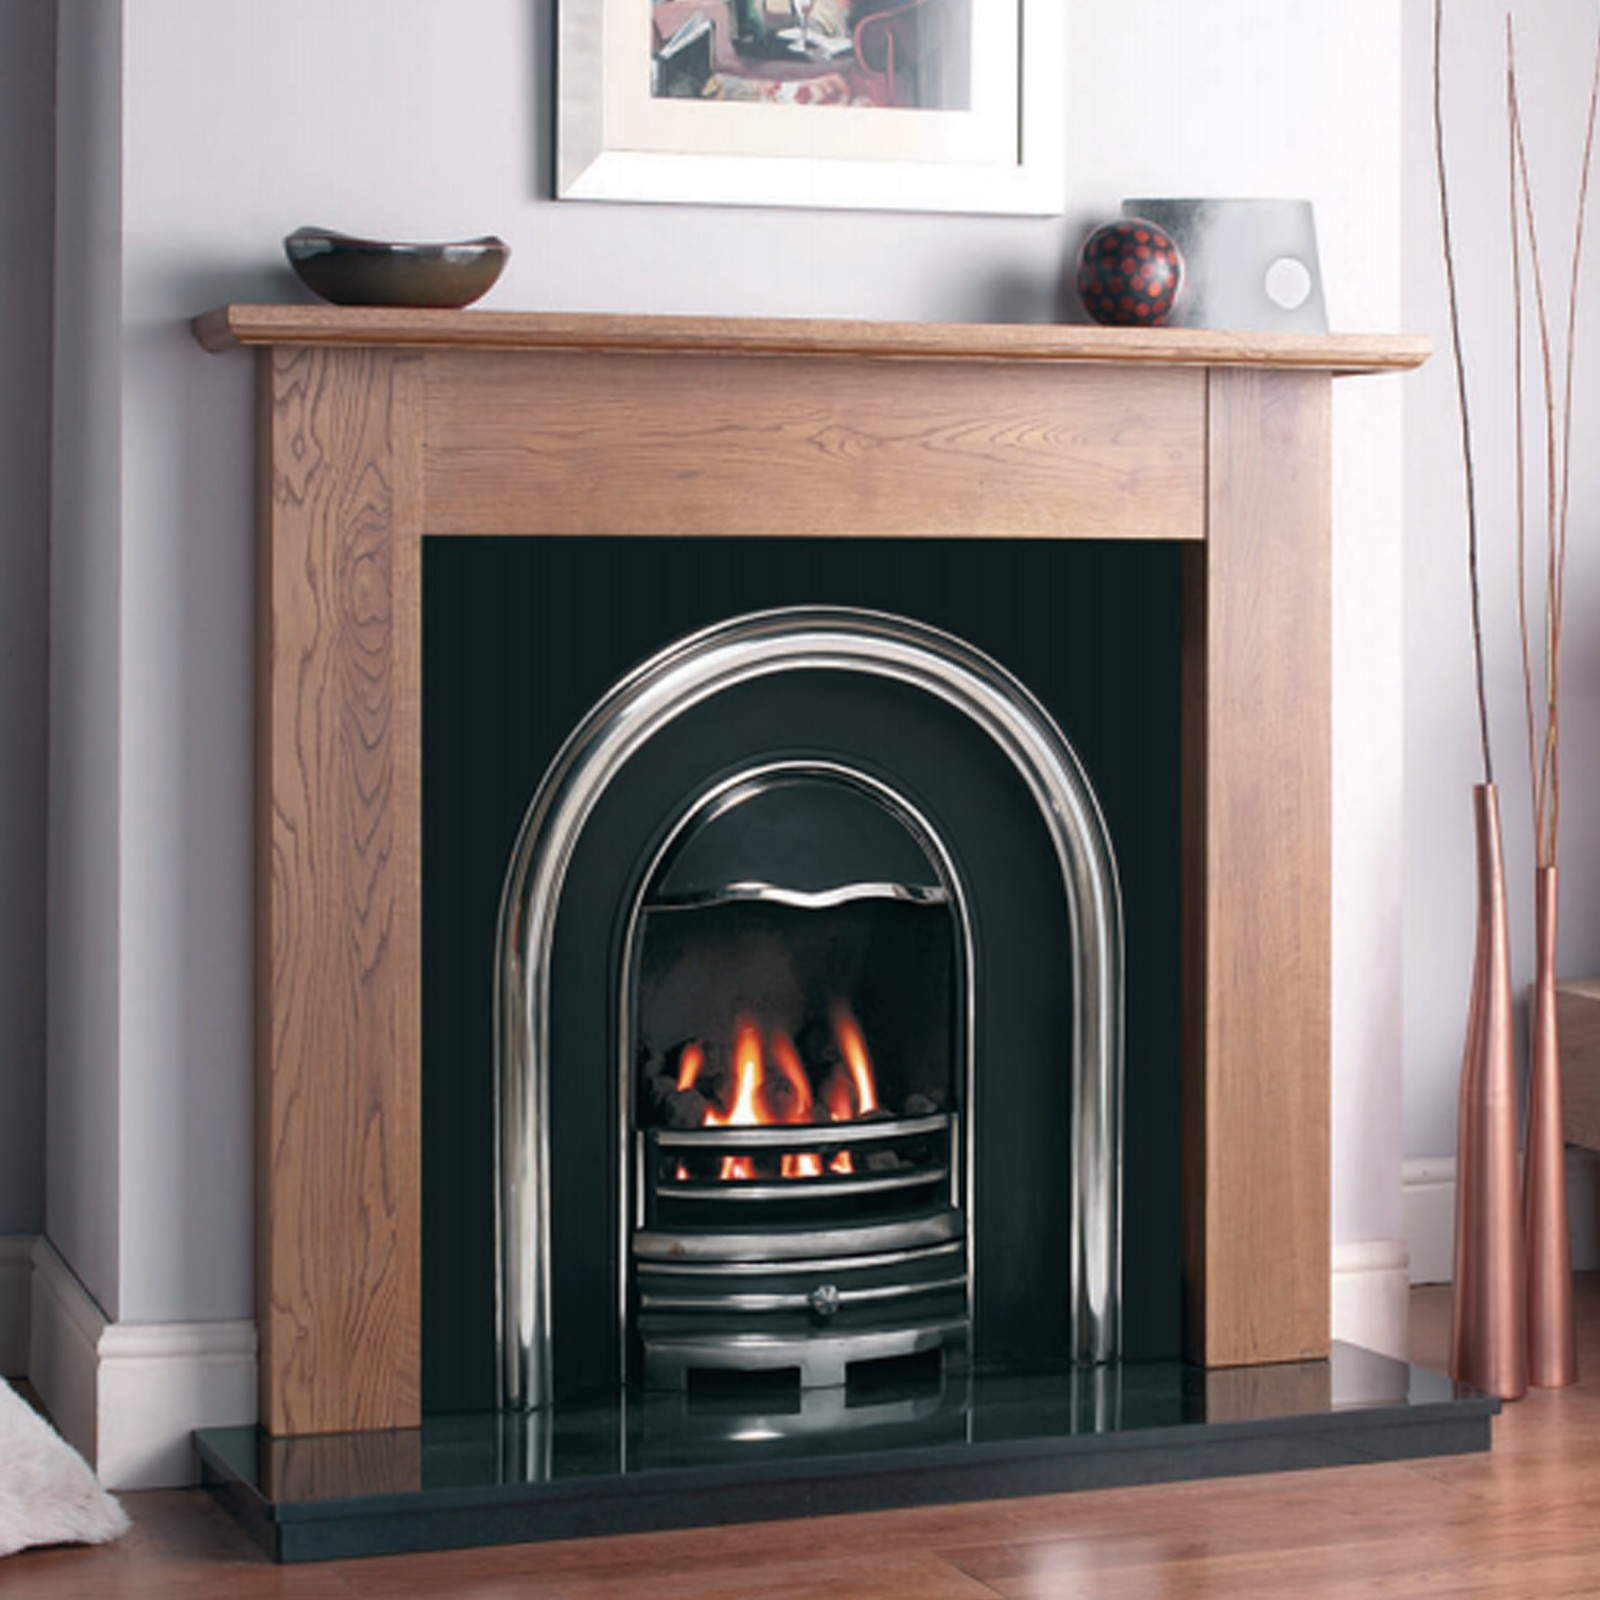 Contemporary Feel Cast Tec Newcastle Fireplace Insert